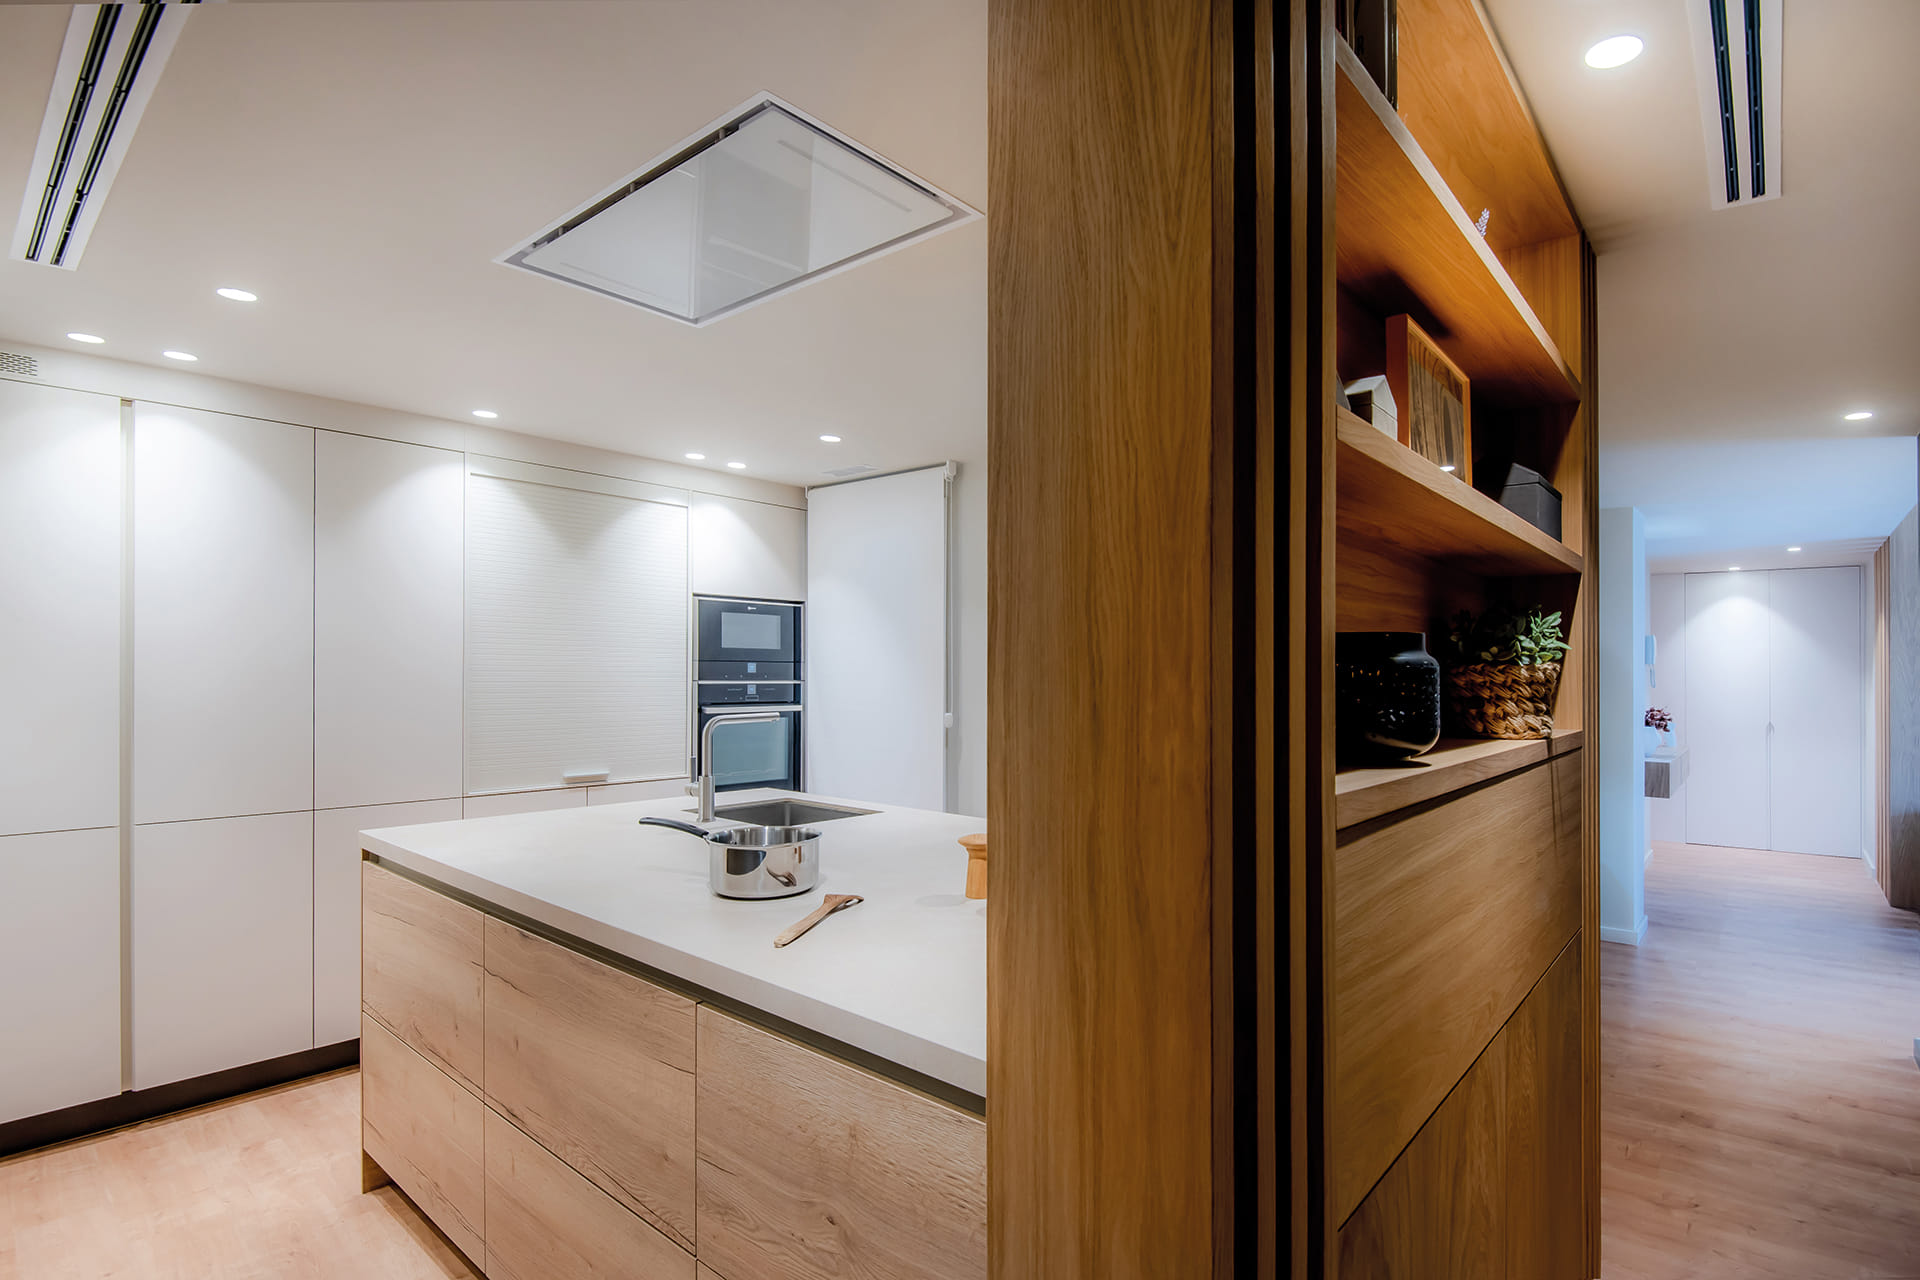 Kitchen with wooden divider cabinet